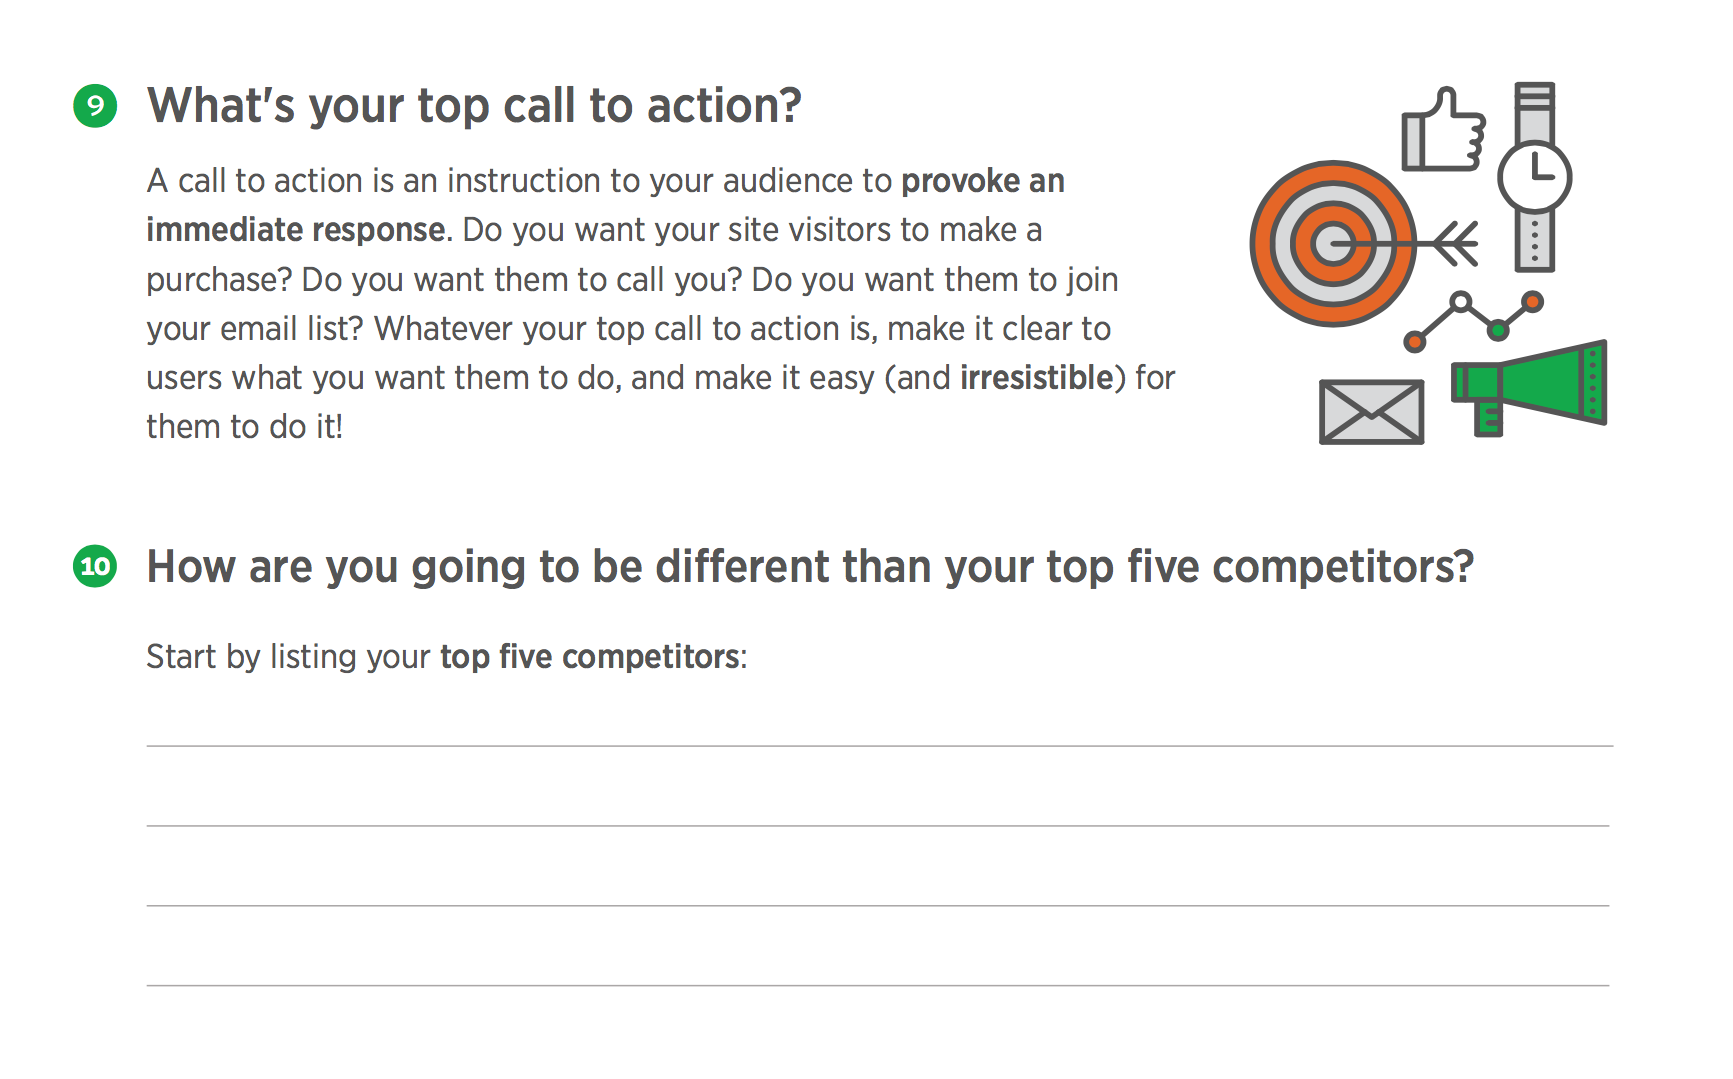 What's the top call to action on your website?